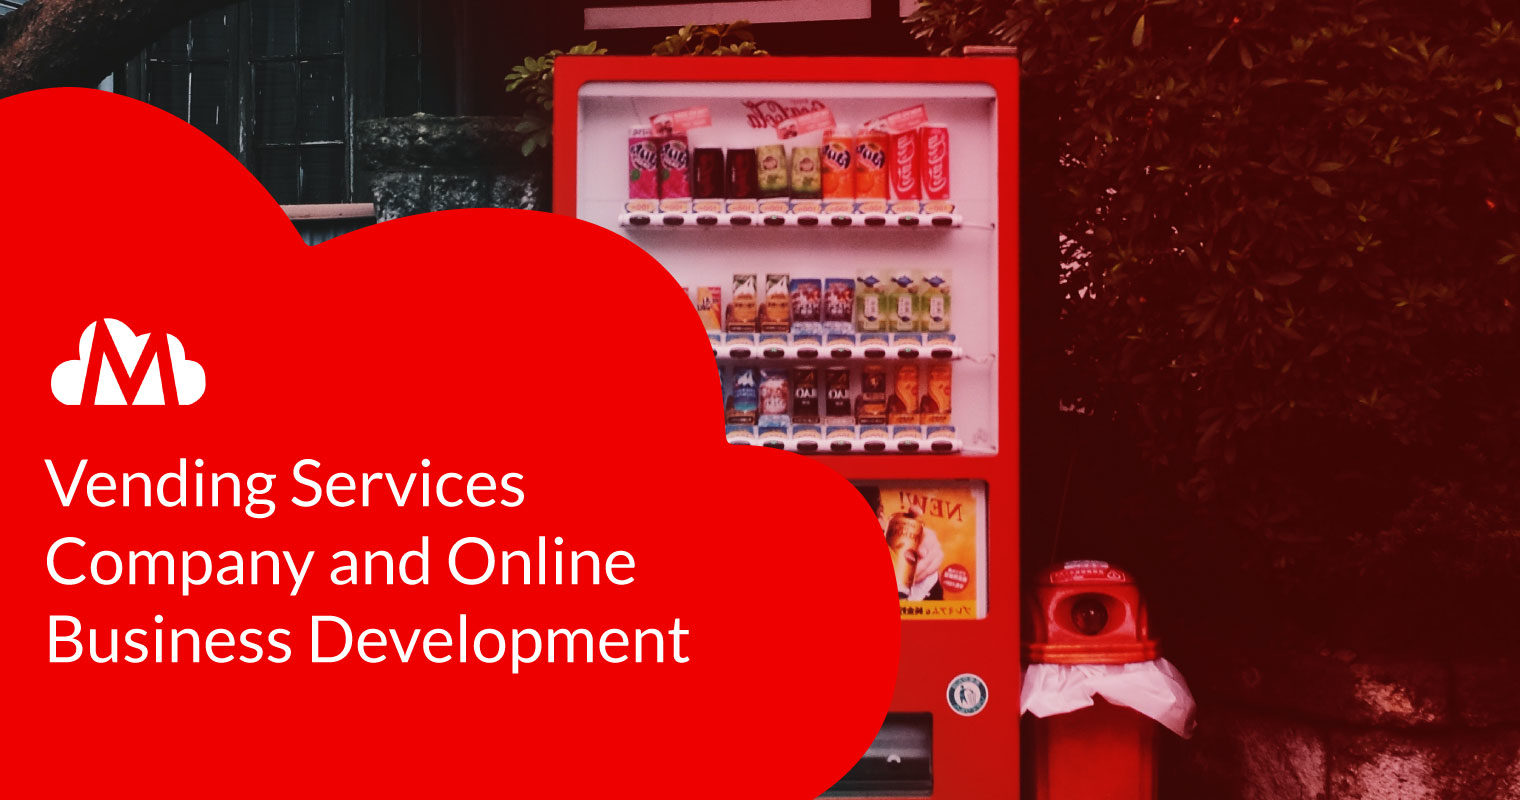 Vending Services Company and Online Business Development